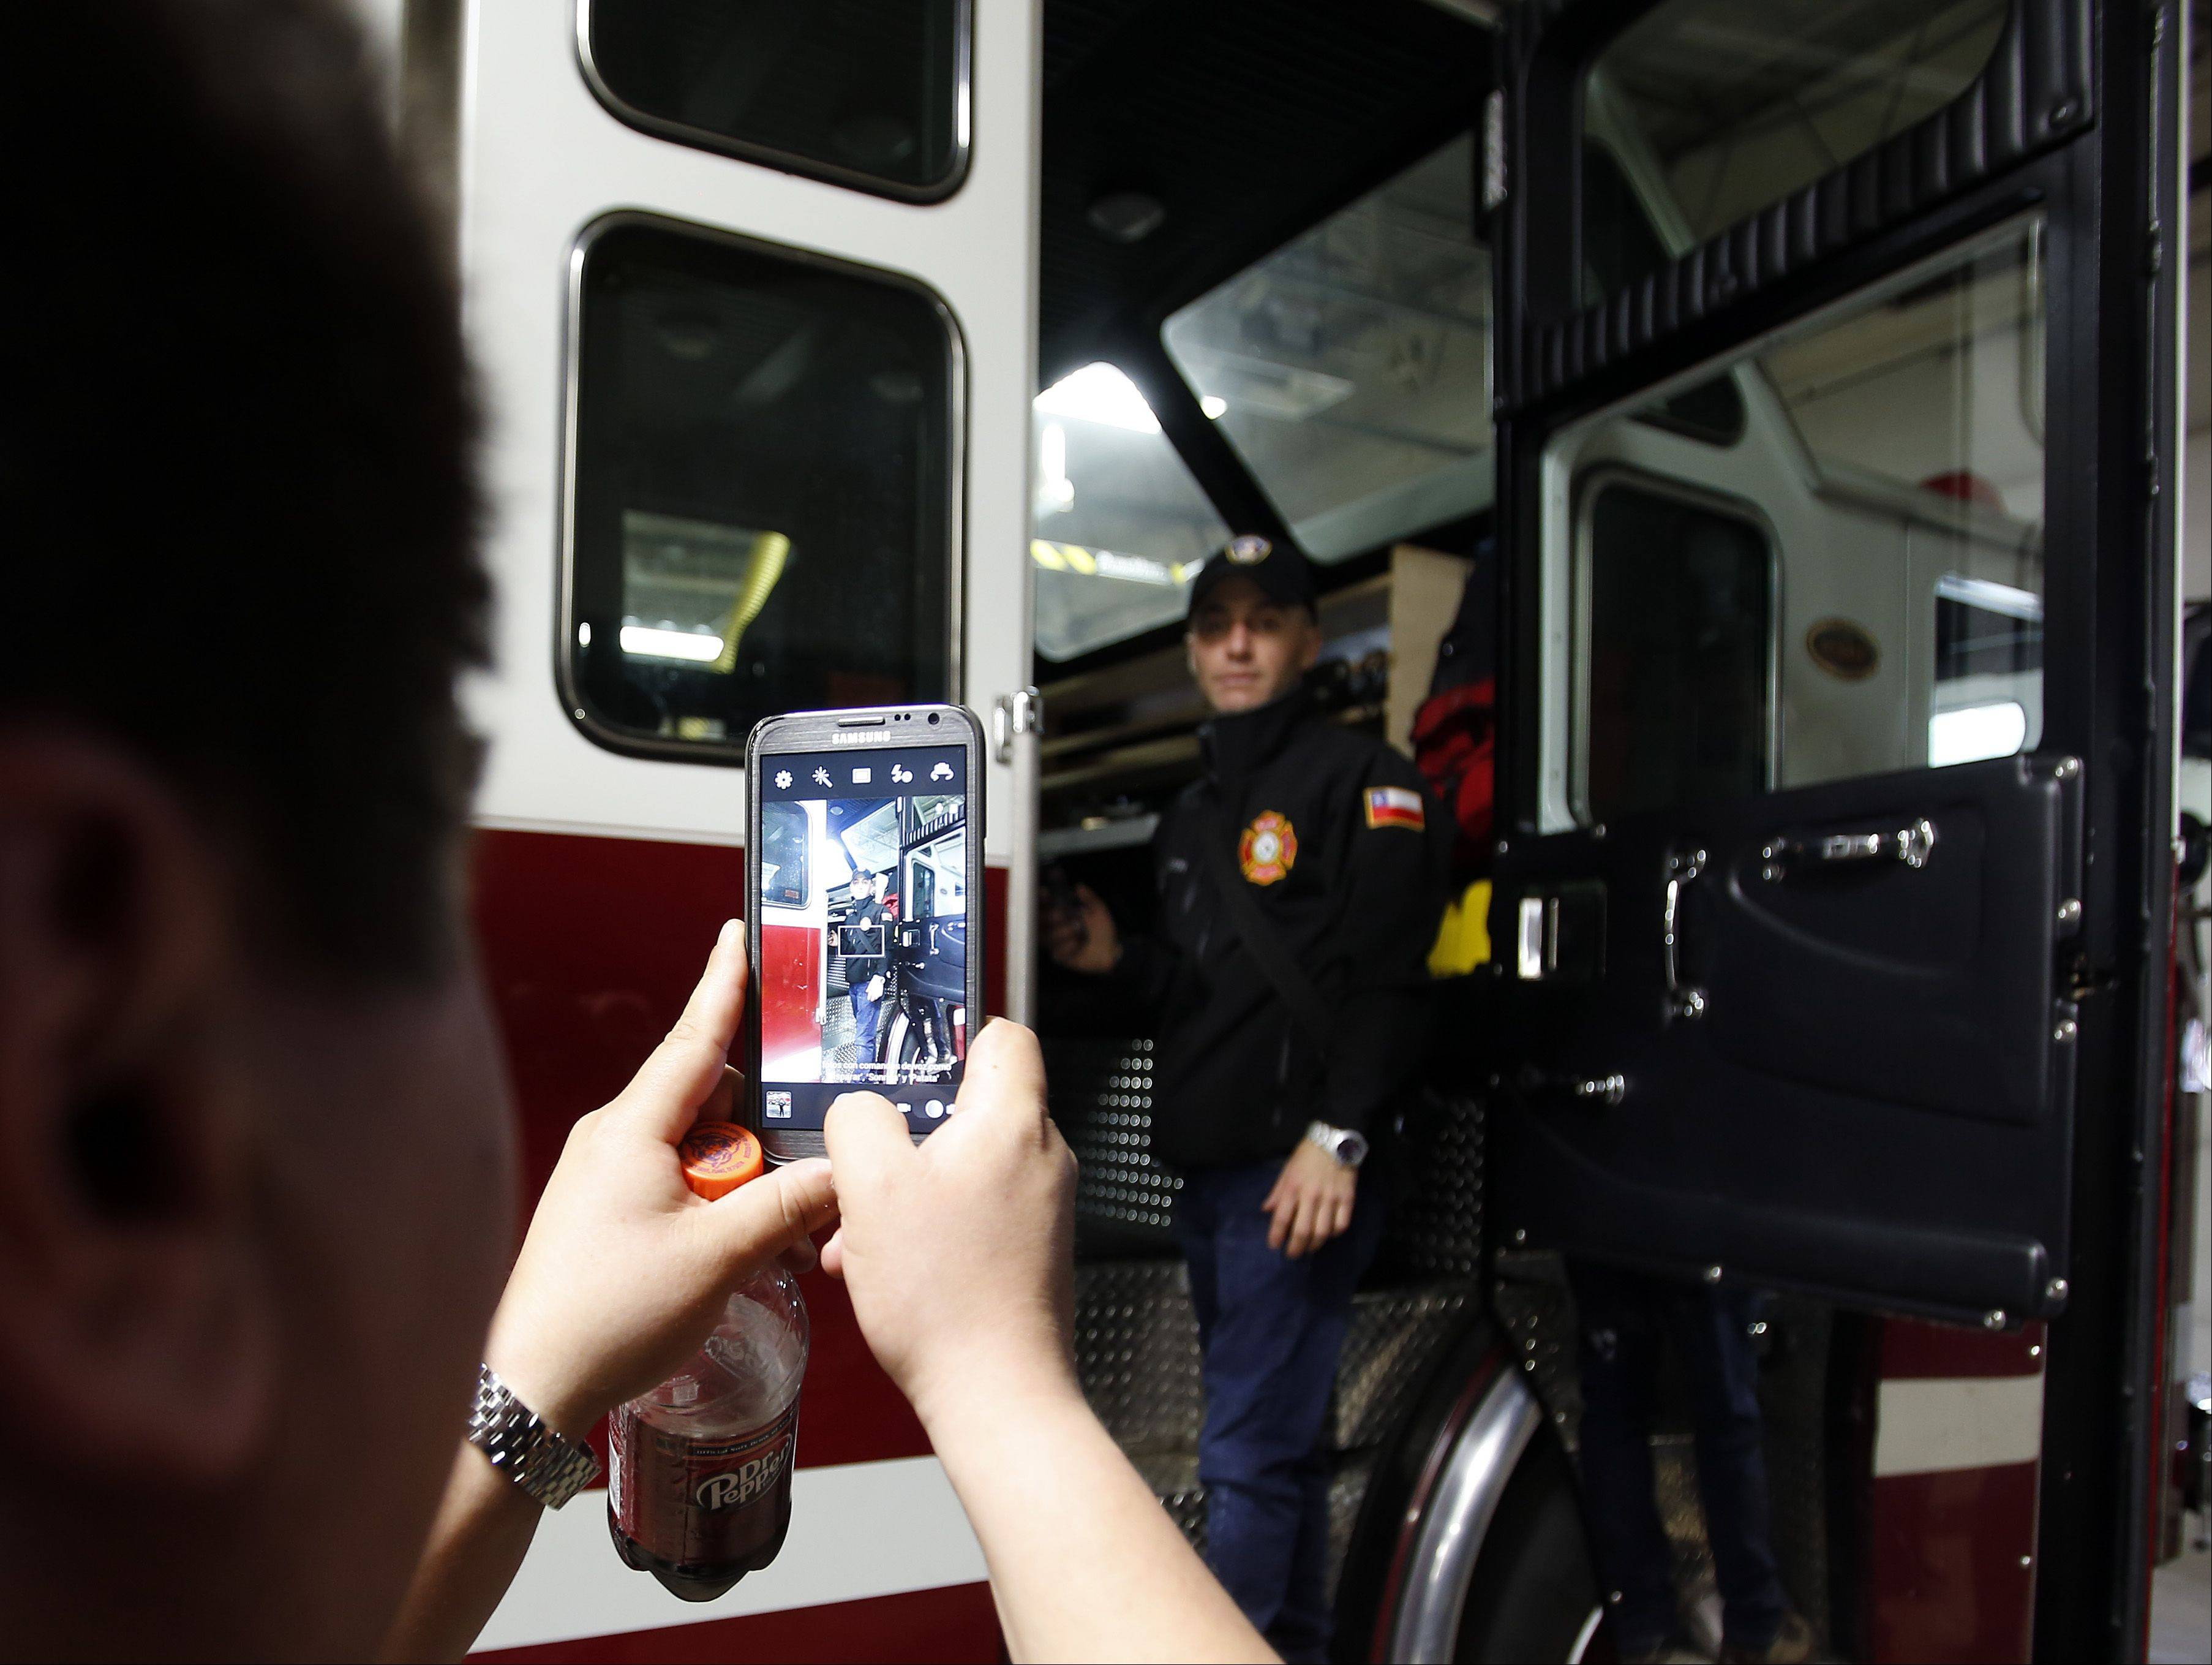 J.M. Lavin B. poses for a picture on one of the Elgin Fire Department trucks during a tour of the Big Timber Road station Wednesday. Lavin is the Inspector General for Chile's Urban Search and Rescue squad.